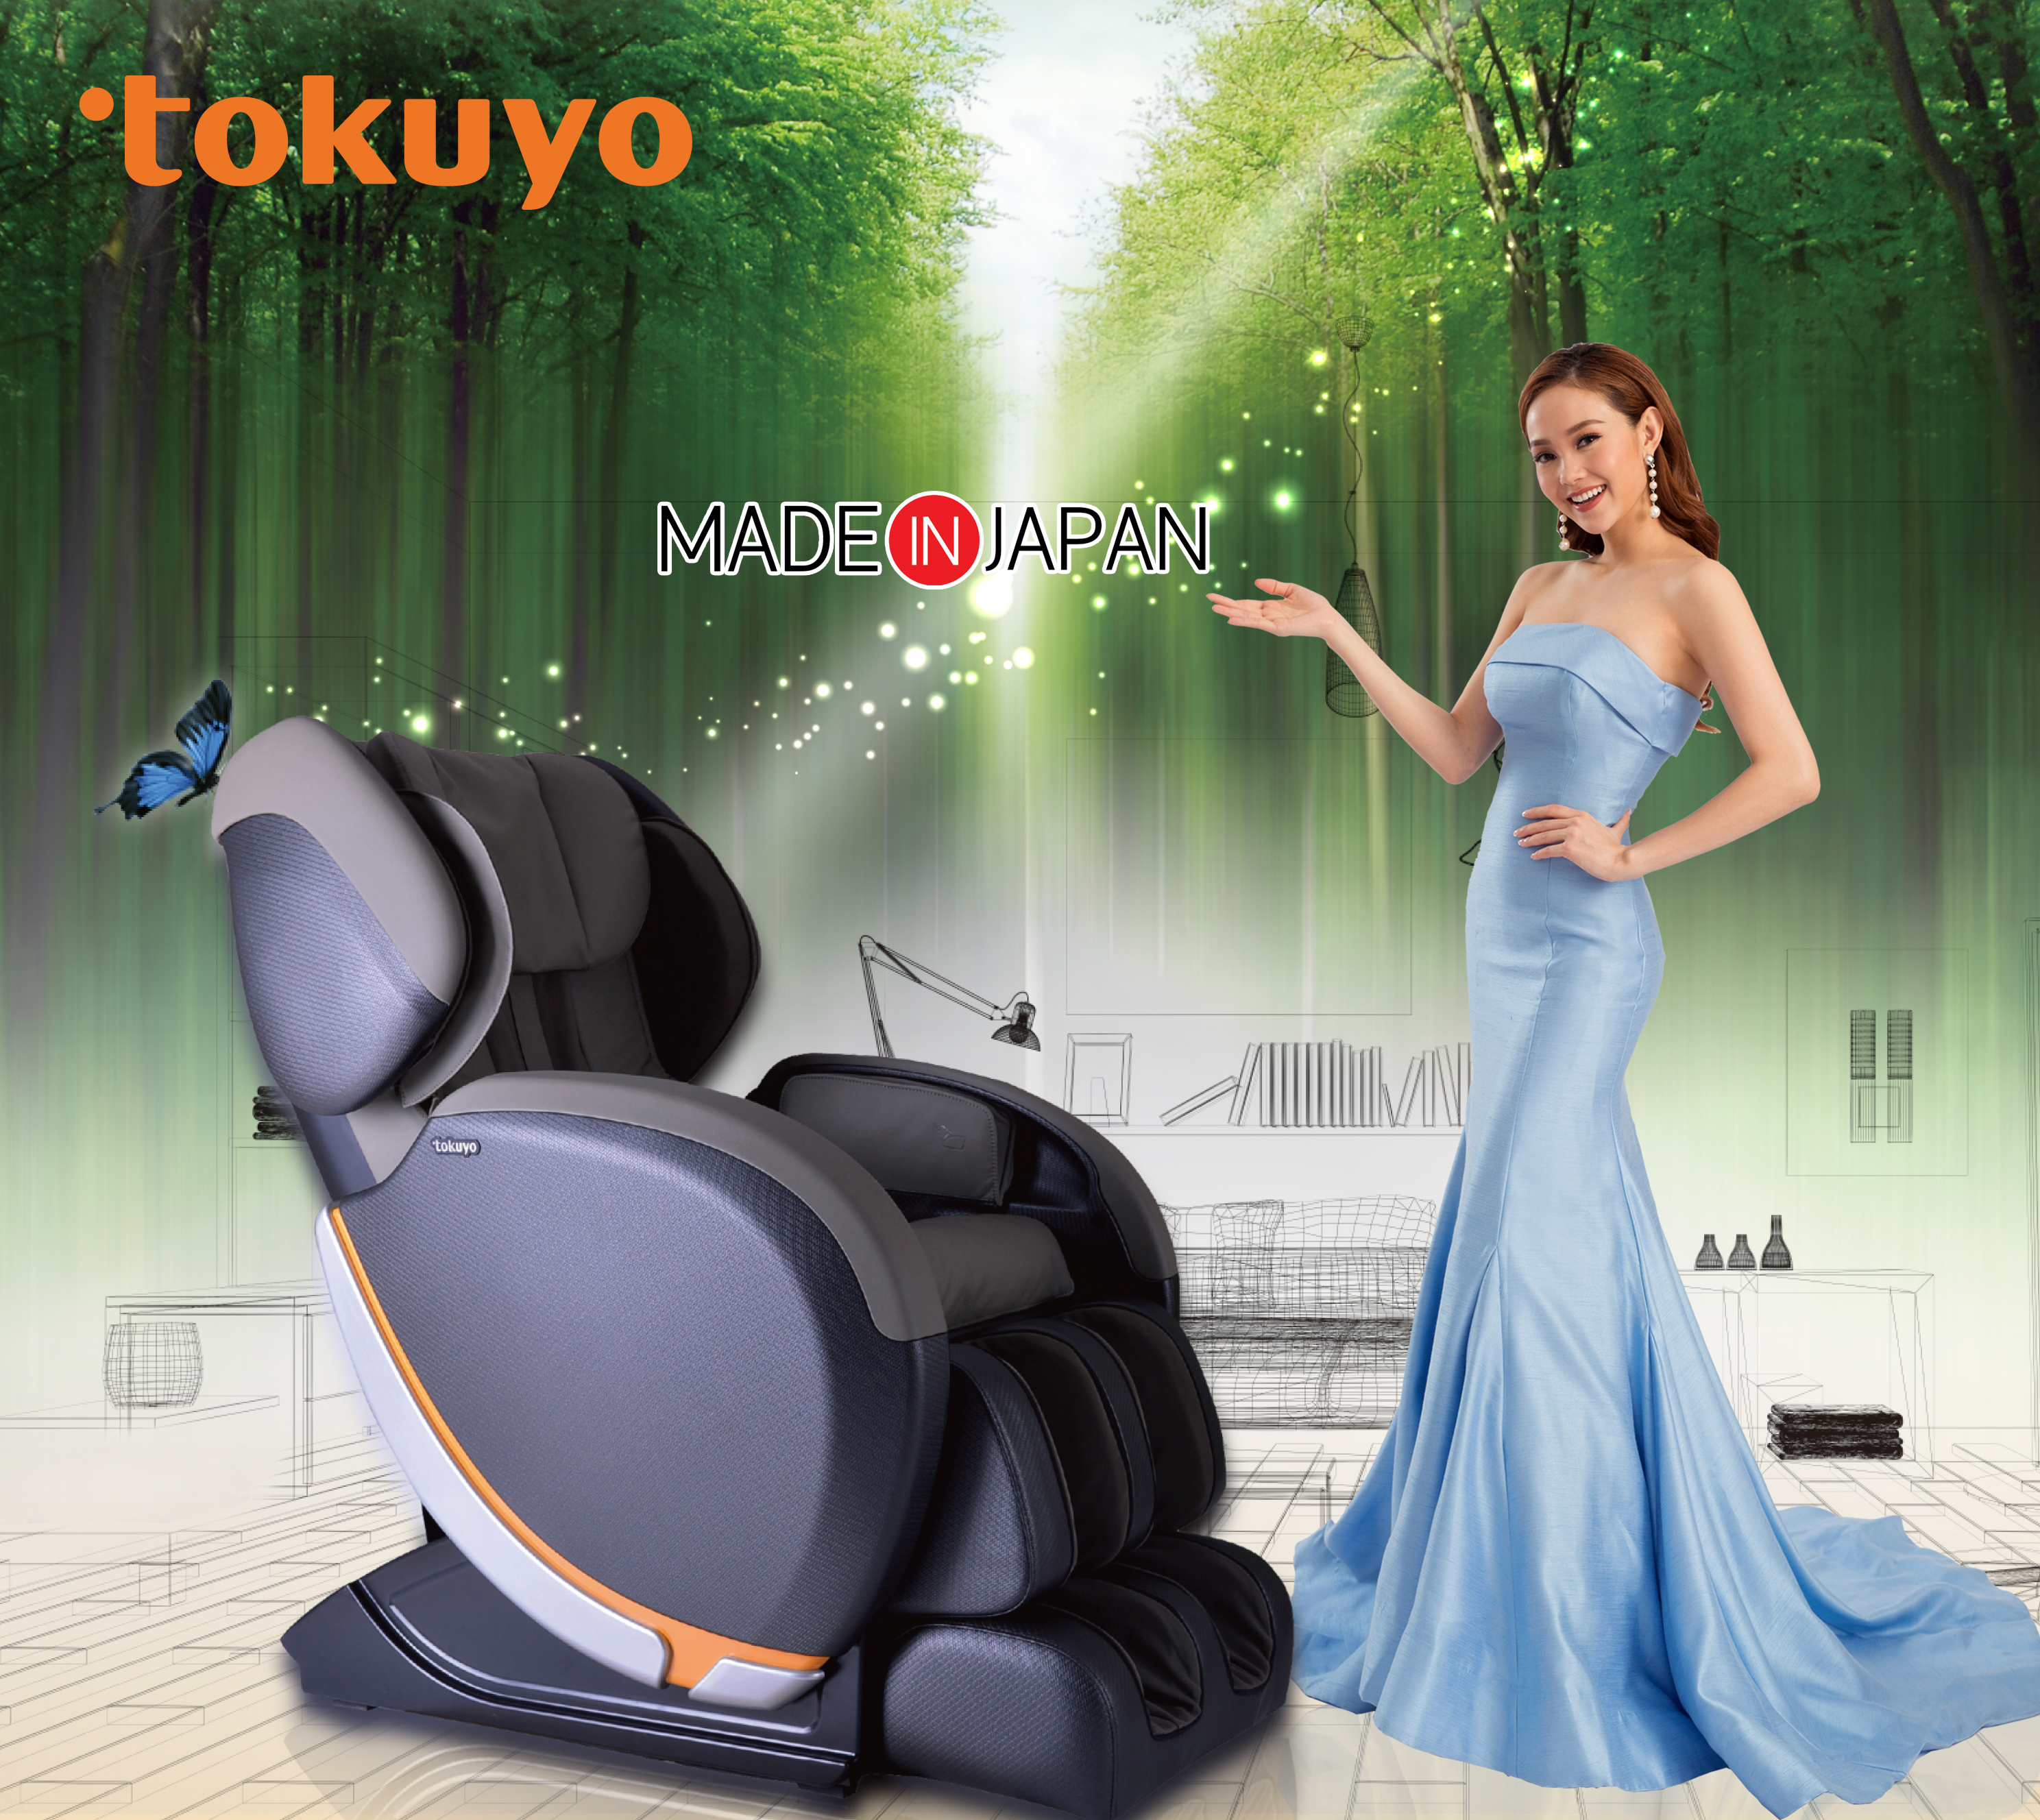 ghế massage tokuyo jc-3680